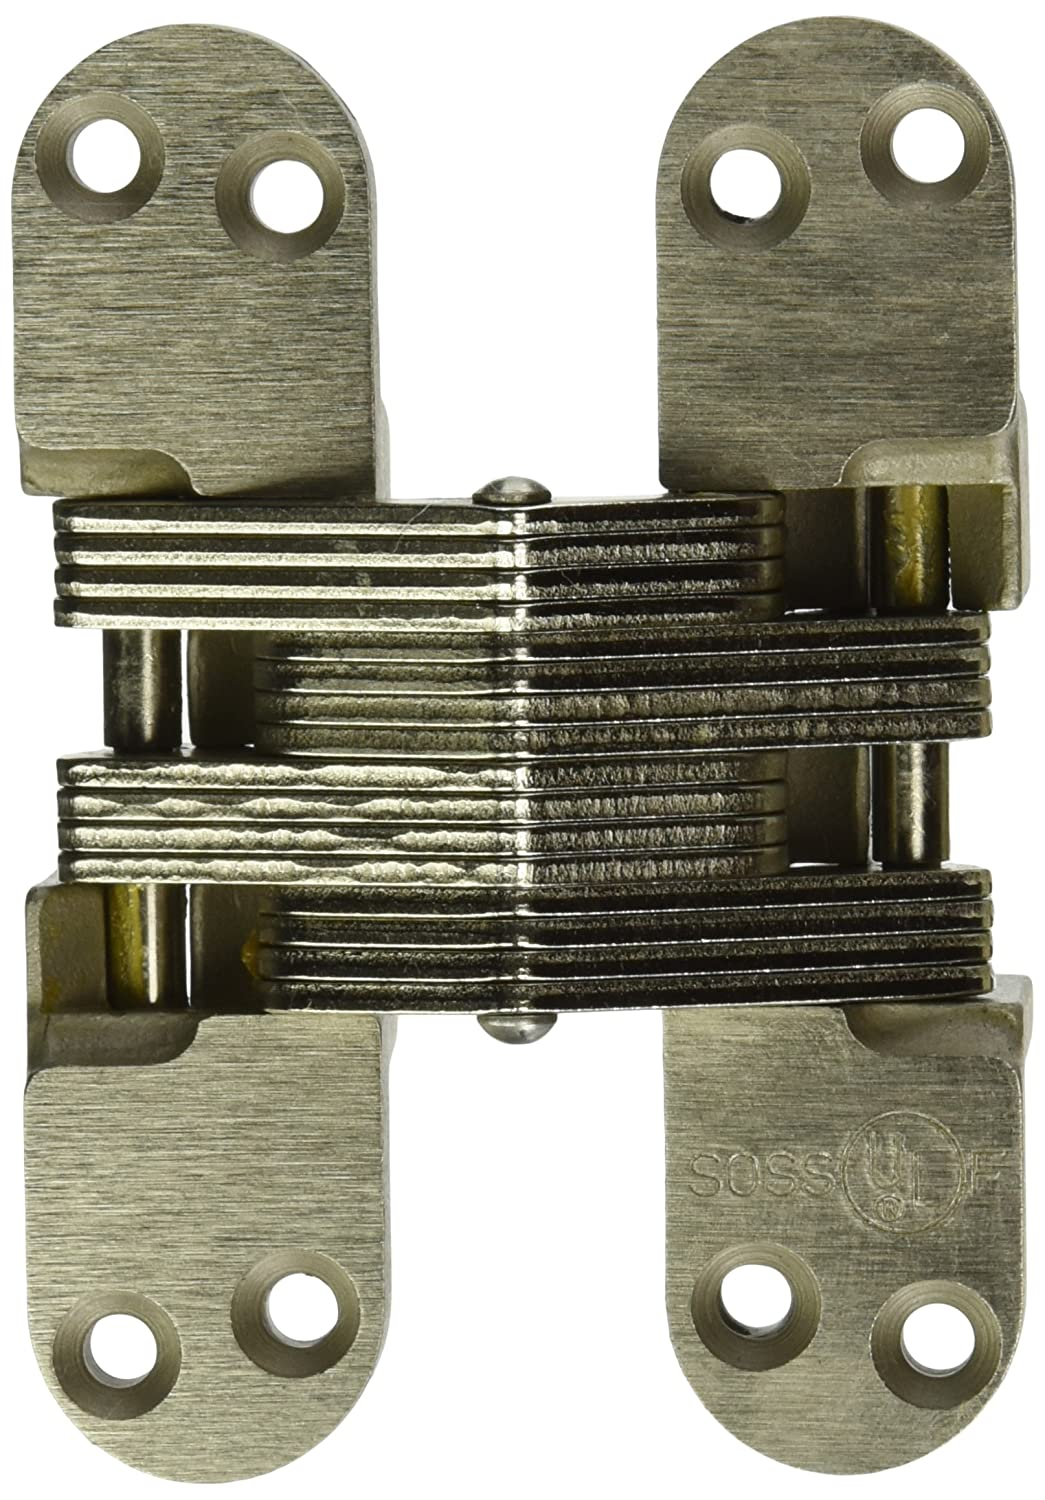 SOSS 418 Alloy Steel 20/90/180 Min. Fire Rated Hinge for 1.75